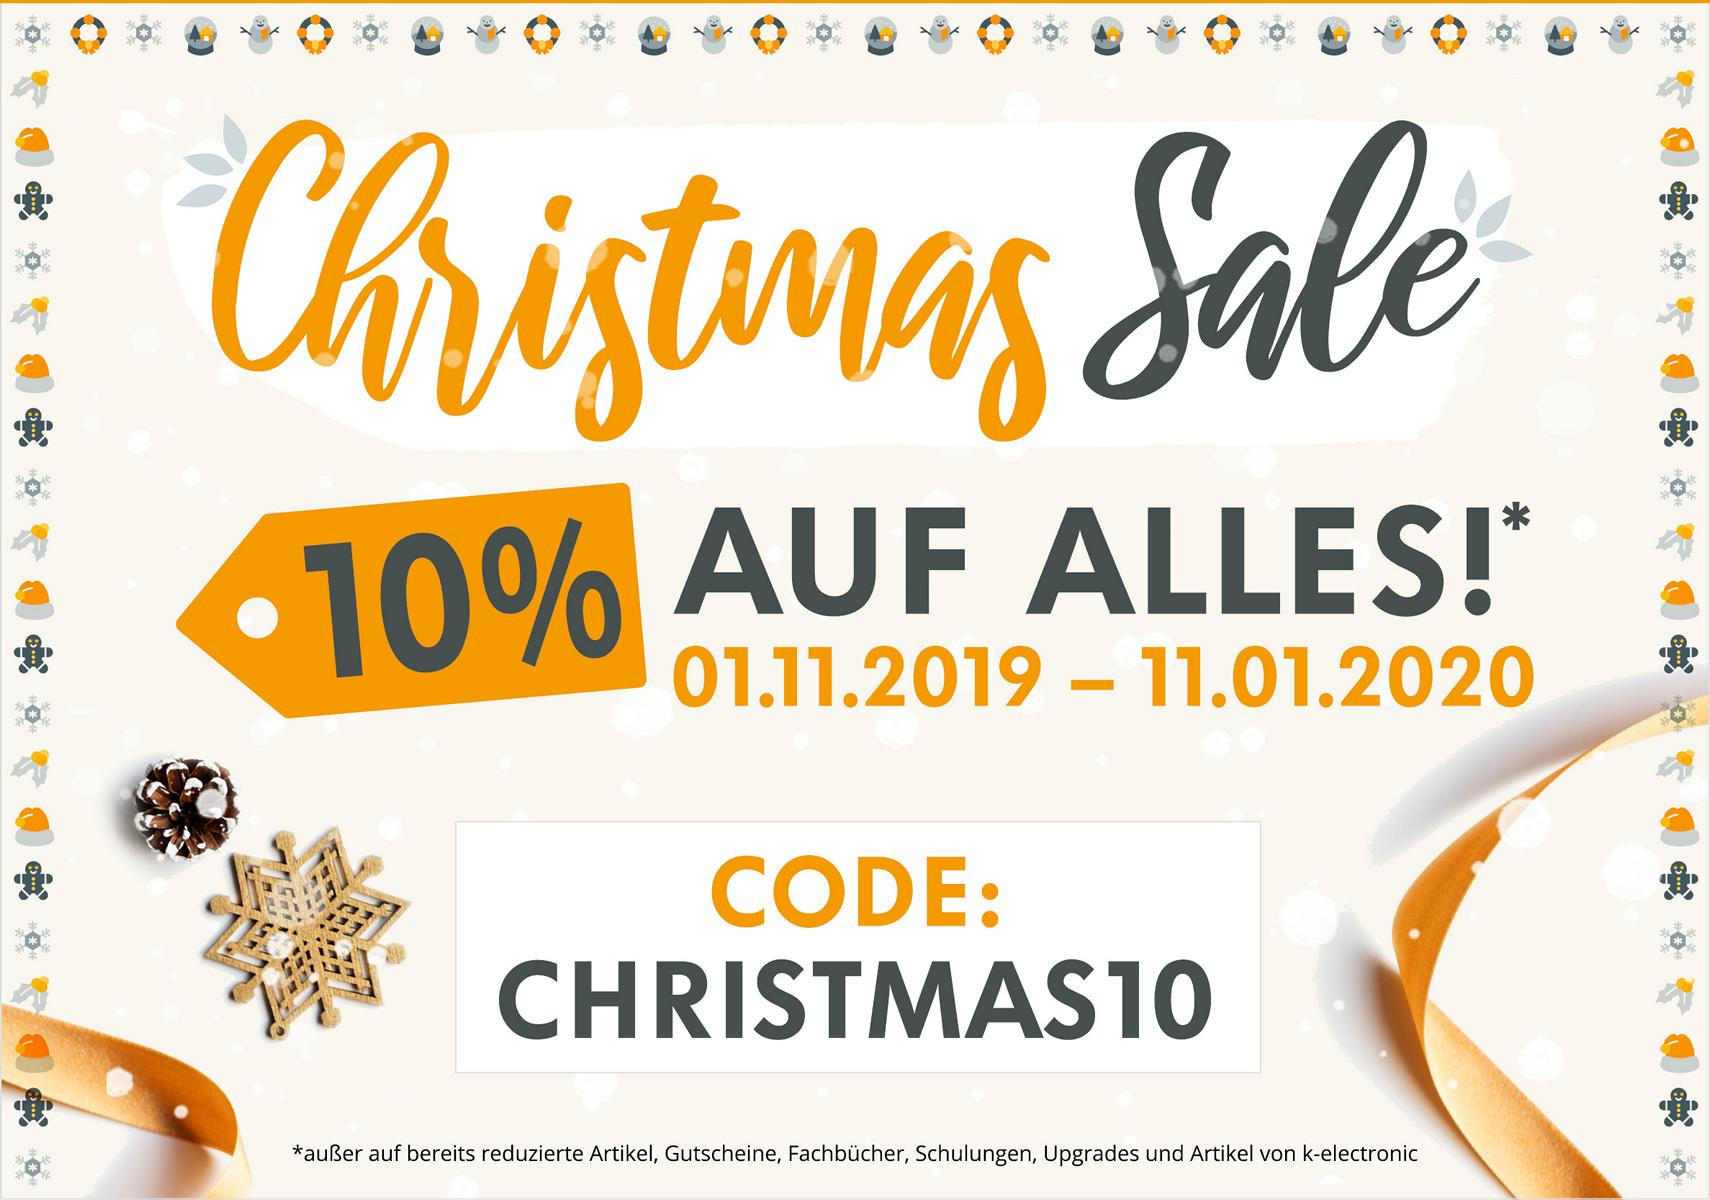 Chistmas-Sale